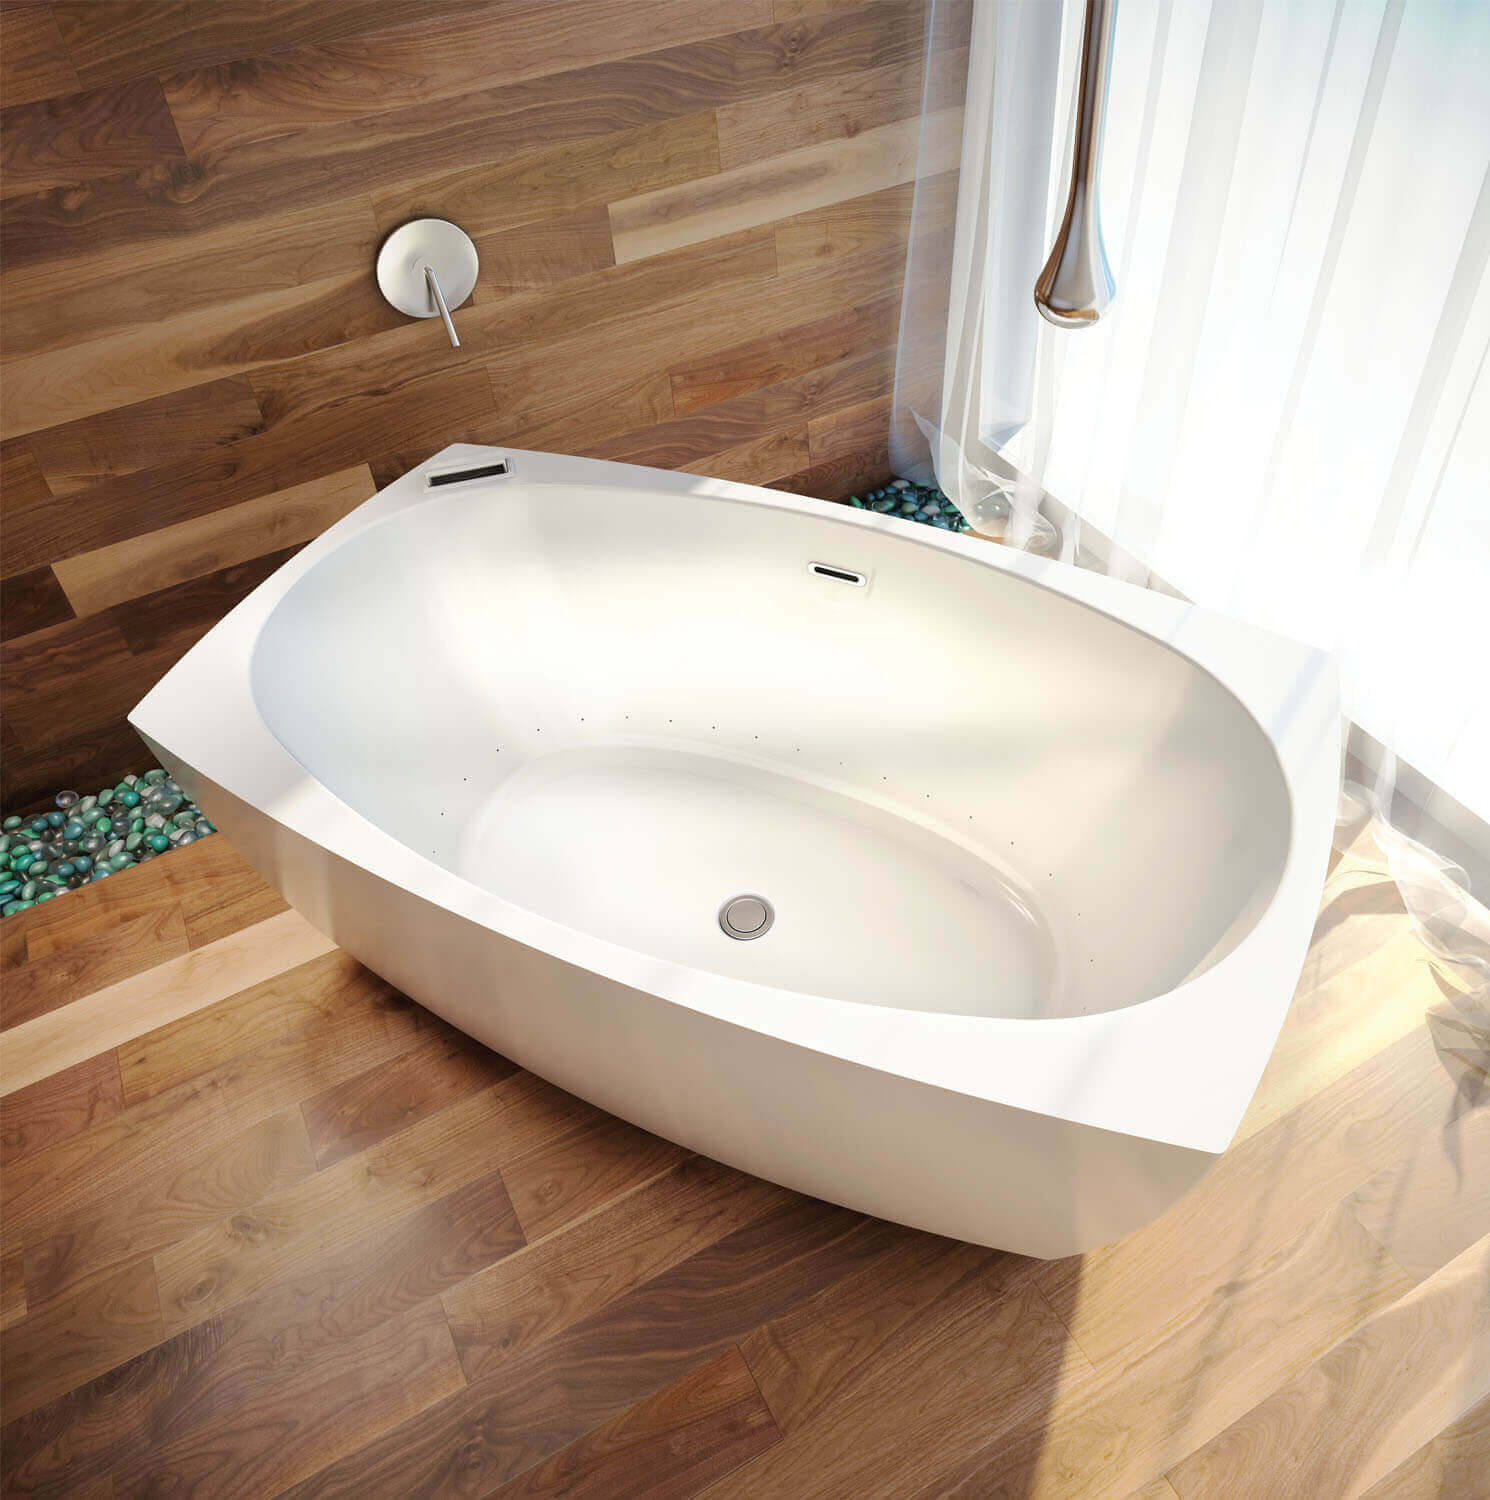 Bainultra Esthesia 6436 freestanding air jet bathtub for your master bathroom